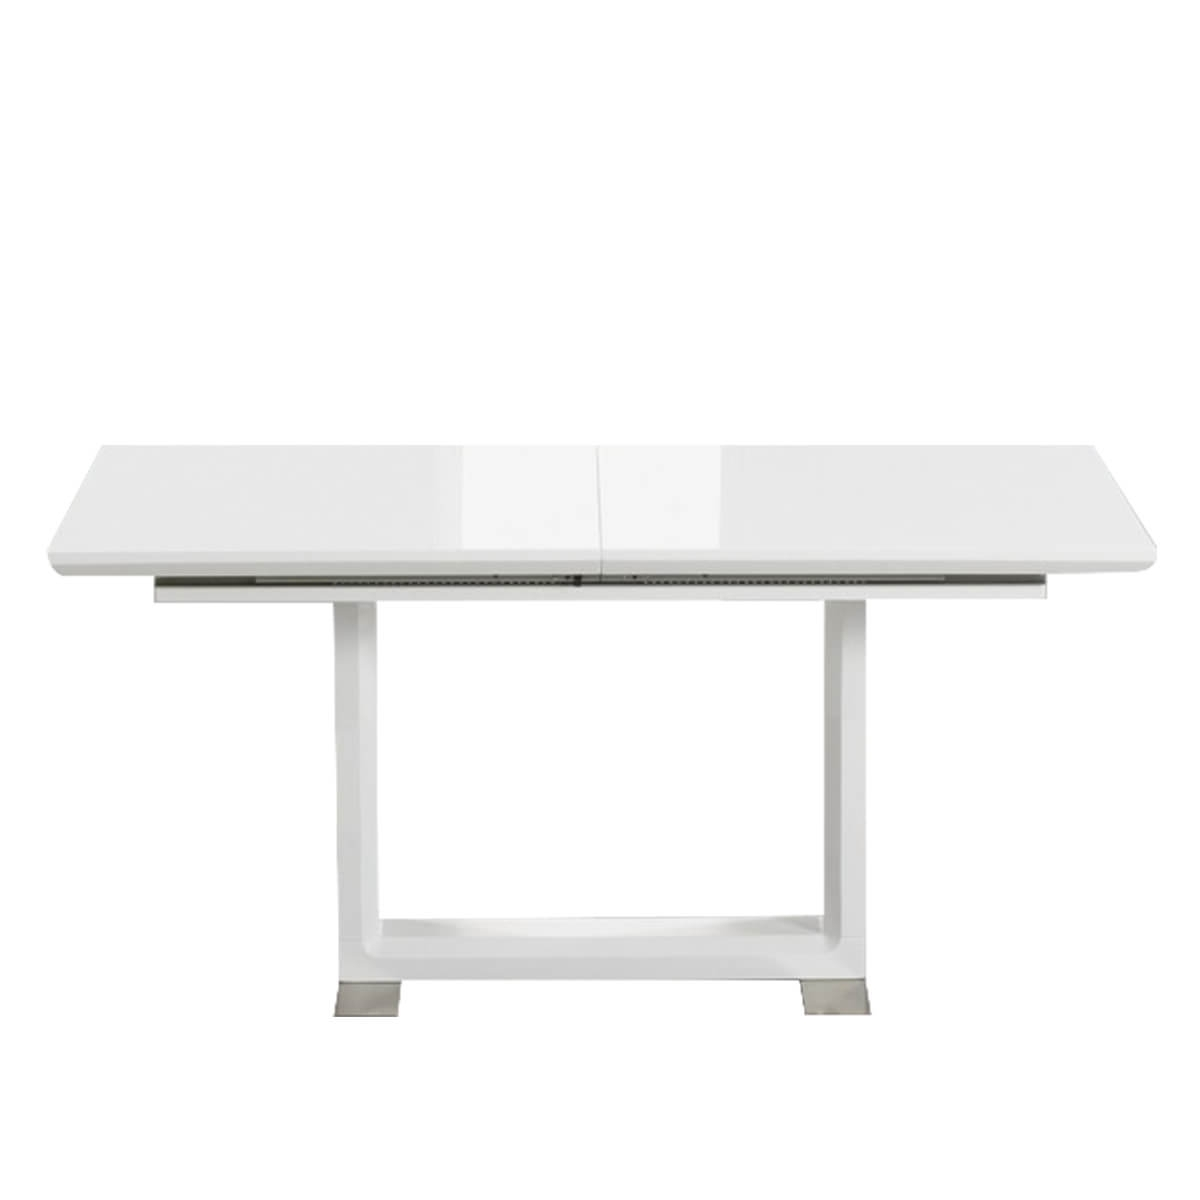 Preferred Beckley 6 8 Seater White High Gloss Extending Dining Table Inside White Gloss Dining Tables 140Cm (View 12 of 25)